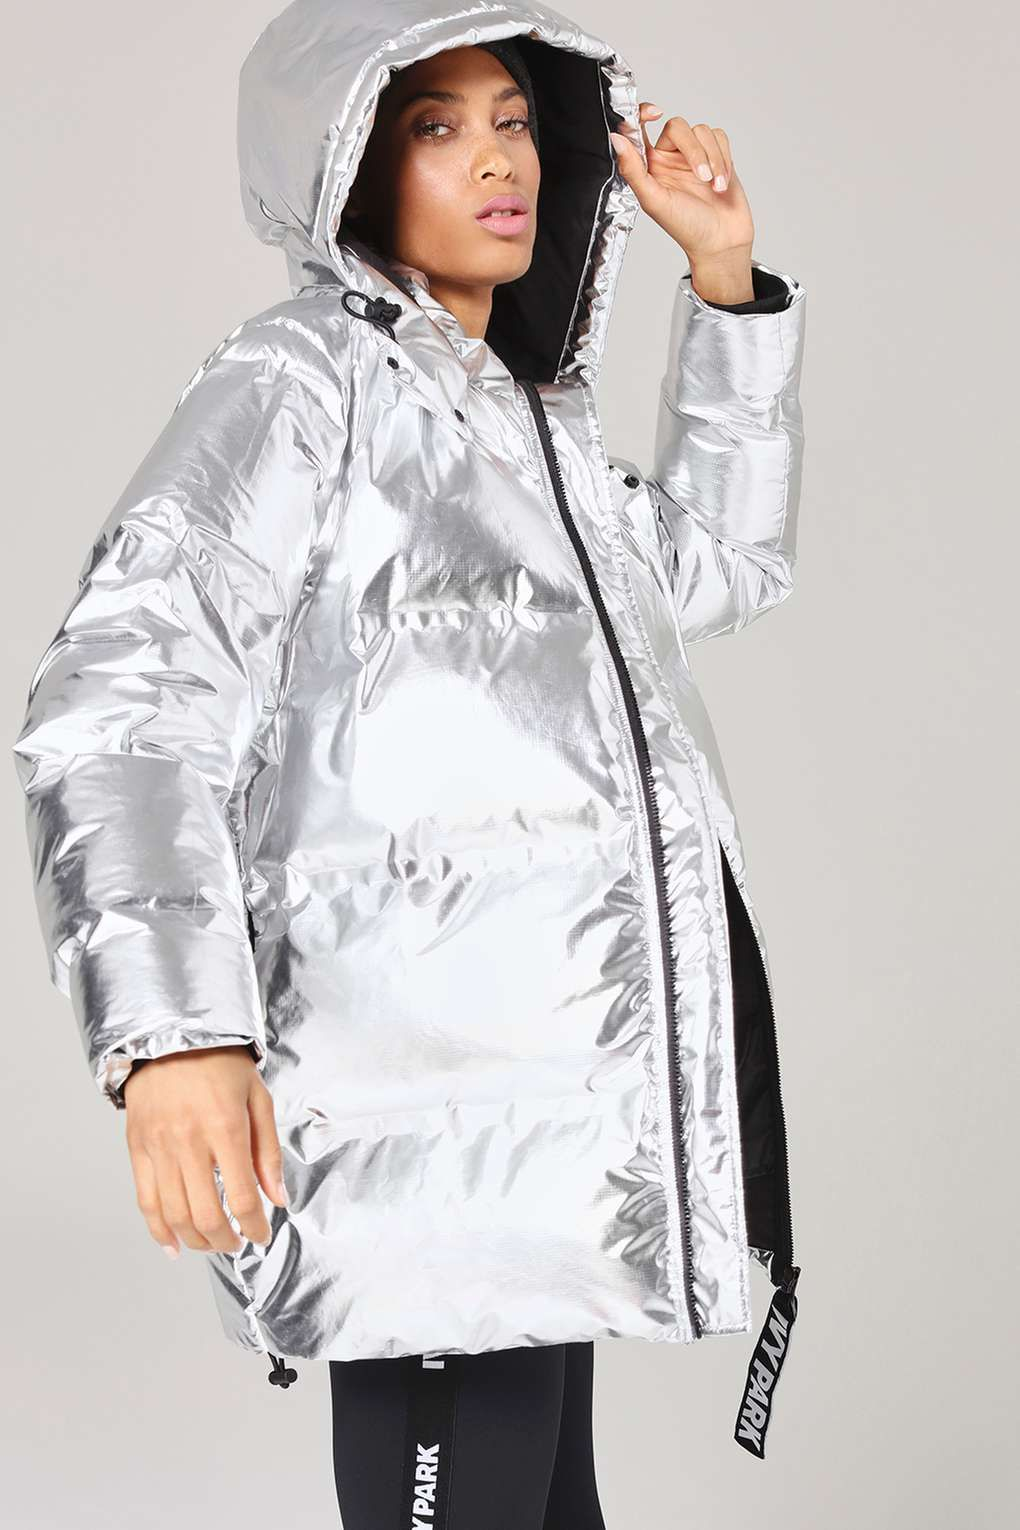 6ee2e2d6201 Oversized Bonded Puffer by Ivy Park - Jackets   Coats - Clothing ...